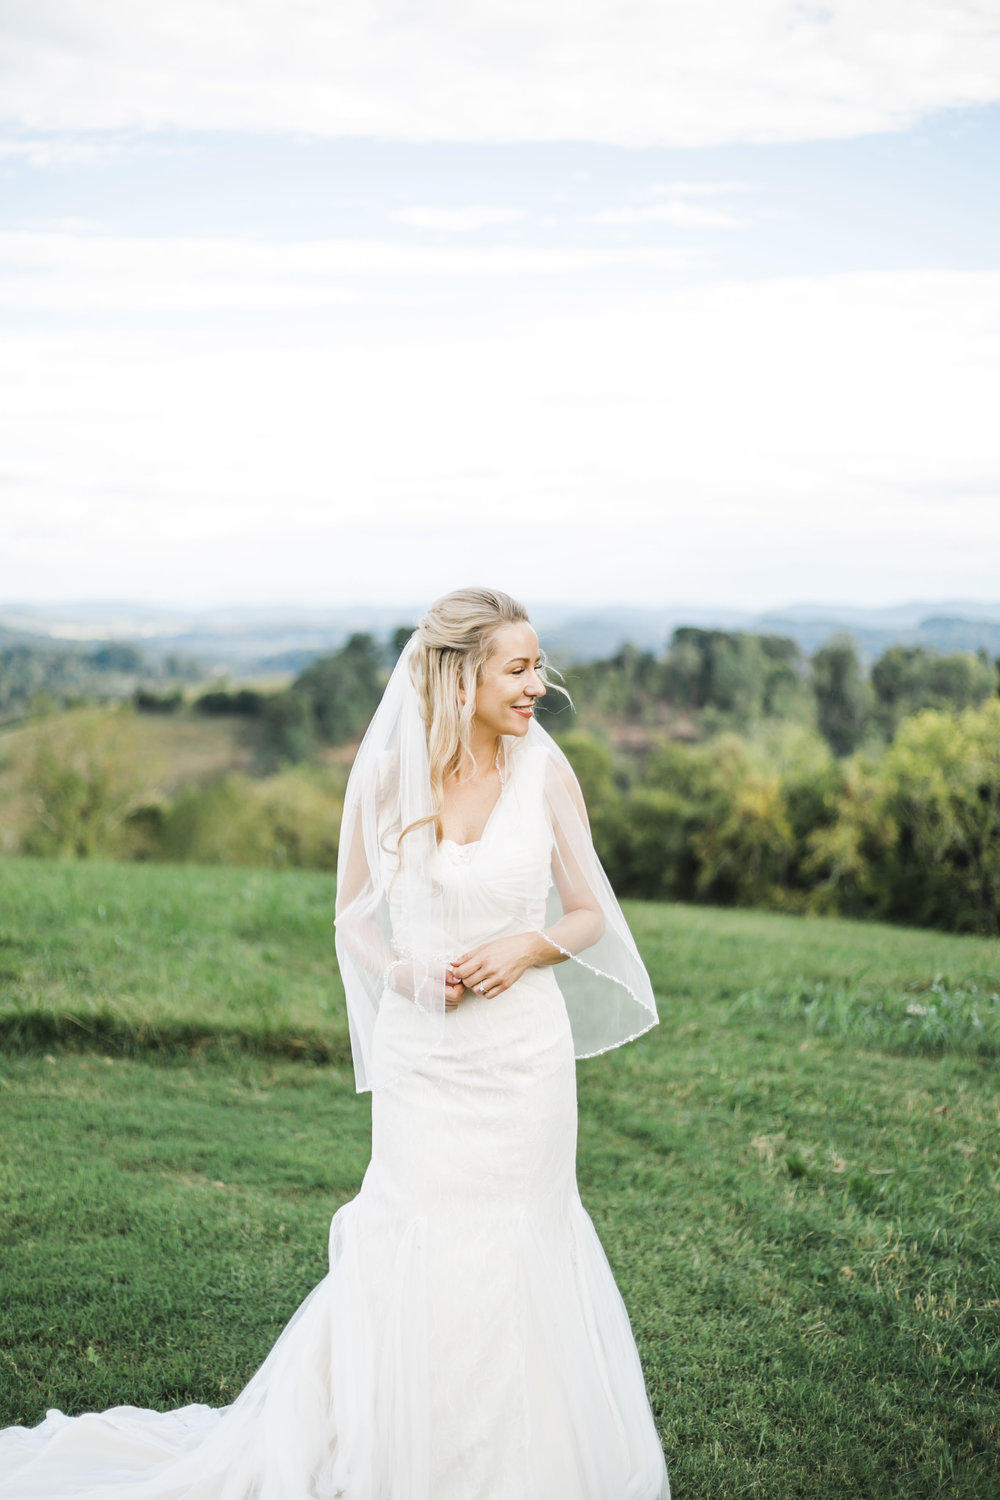 Tennessee wedding venue with Mountain View